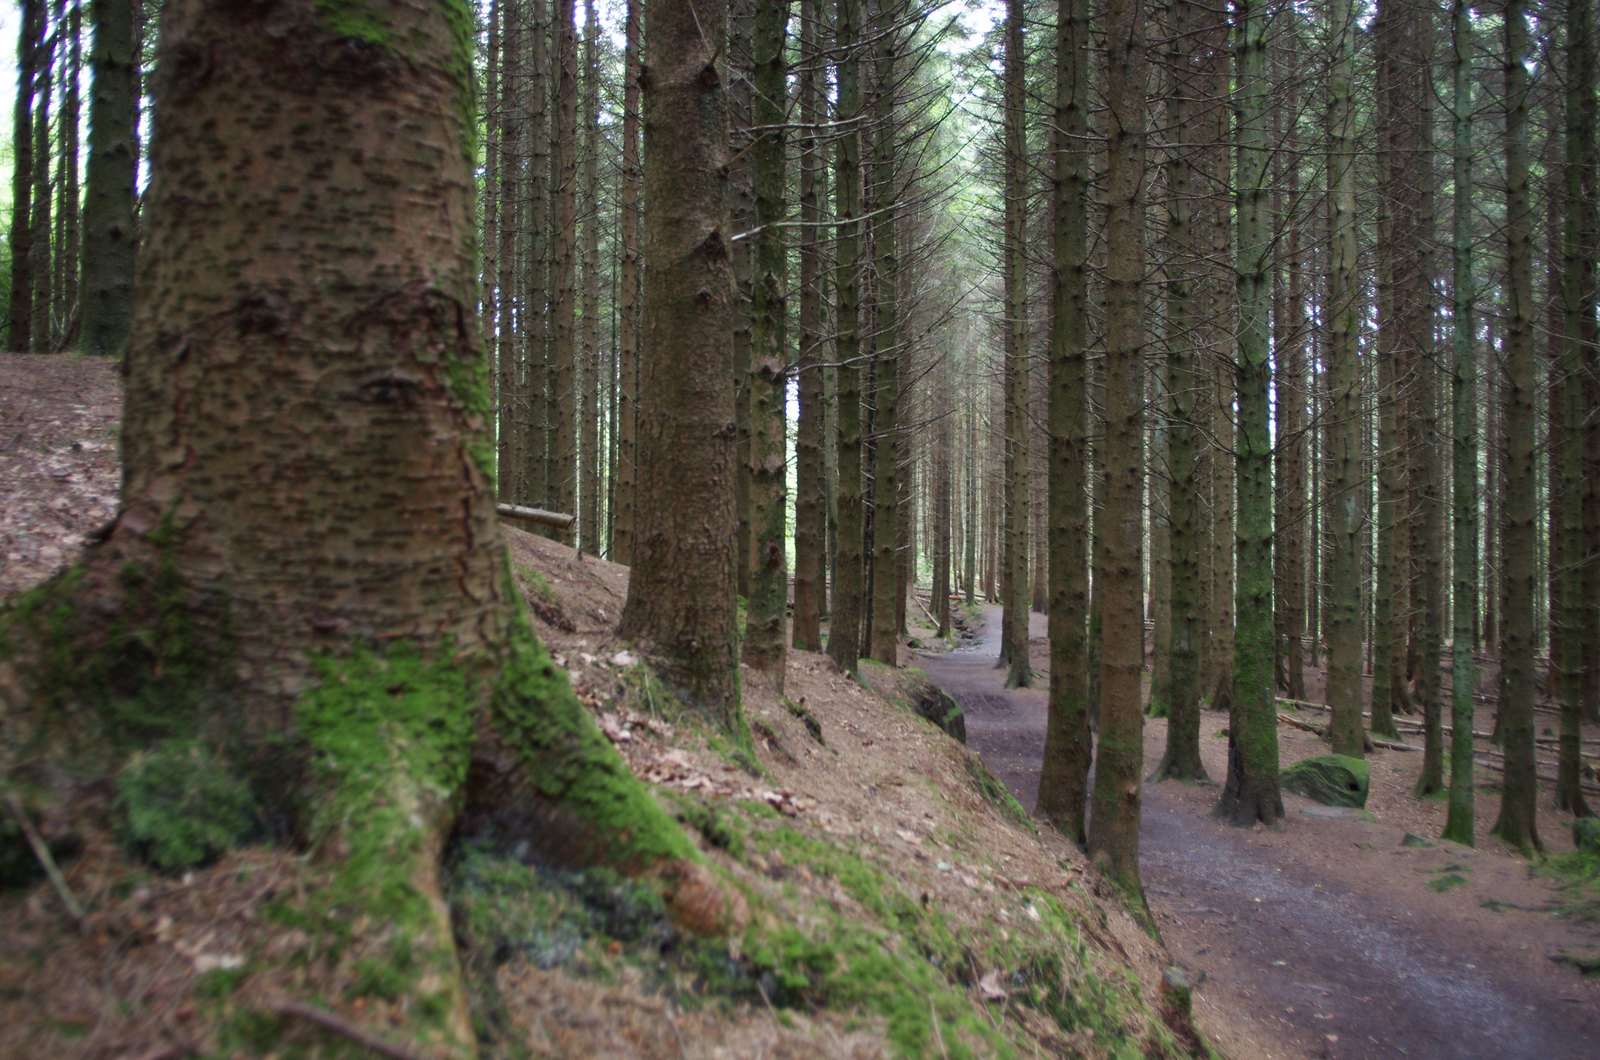 Slieve bloom mountains - Carnet de voyage en Irlande